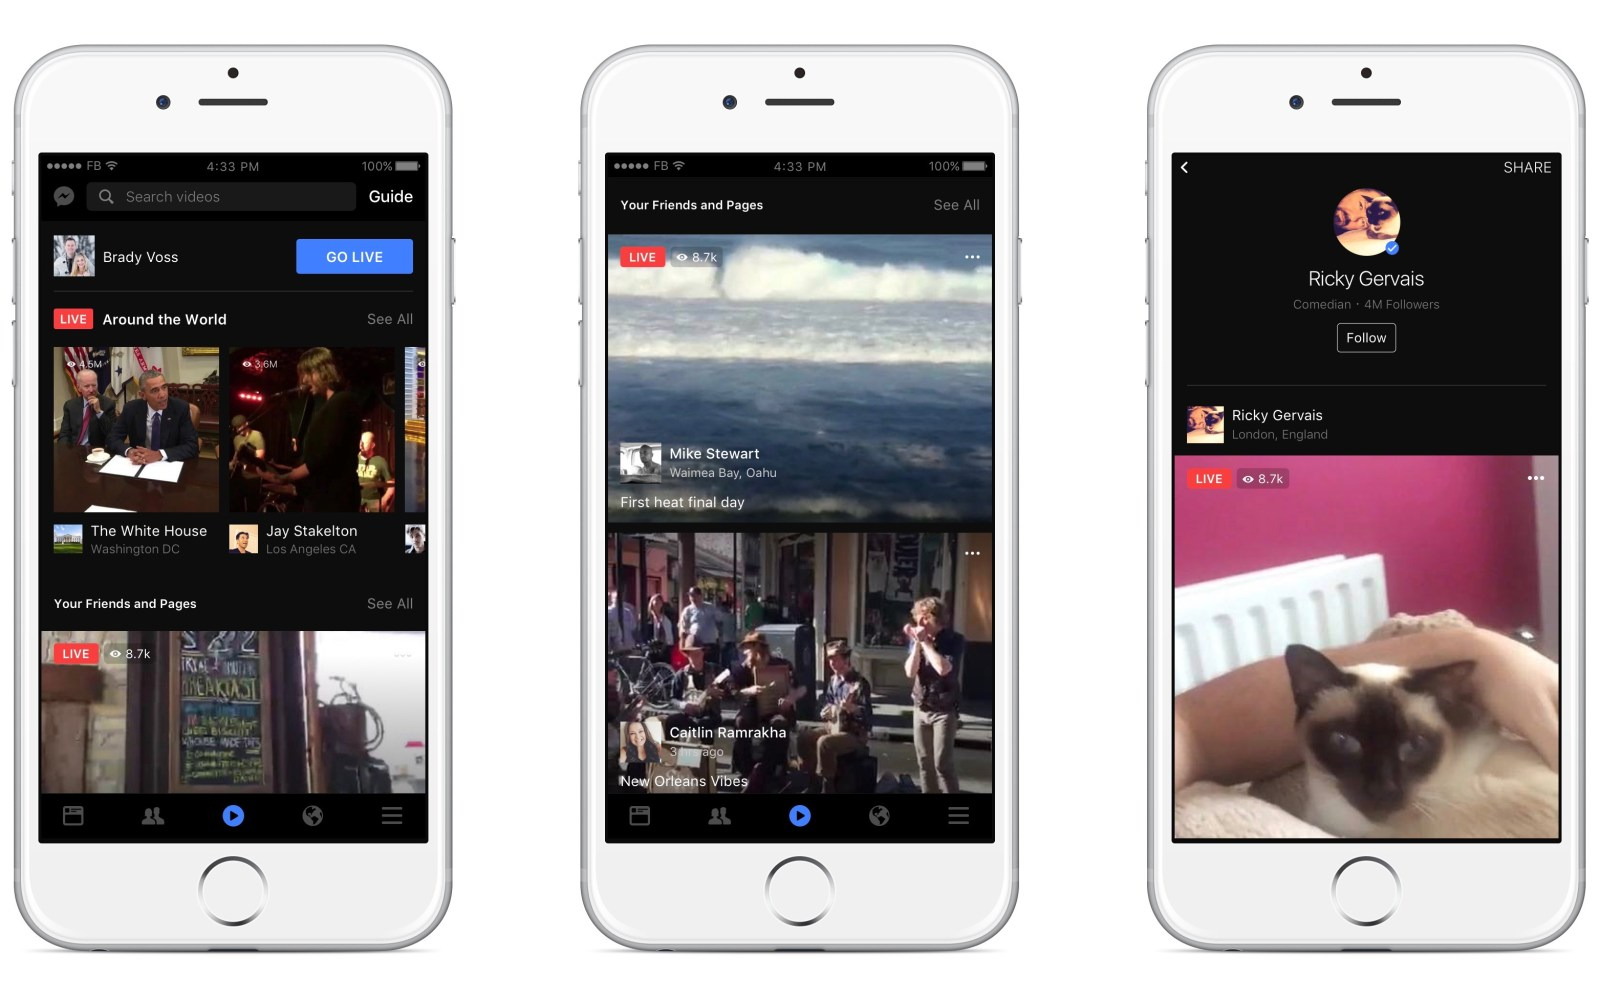 Facebook Live update brings ability to go live in Groups, interactive features, more